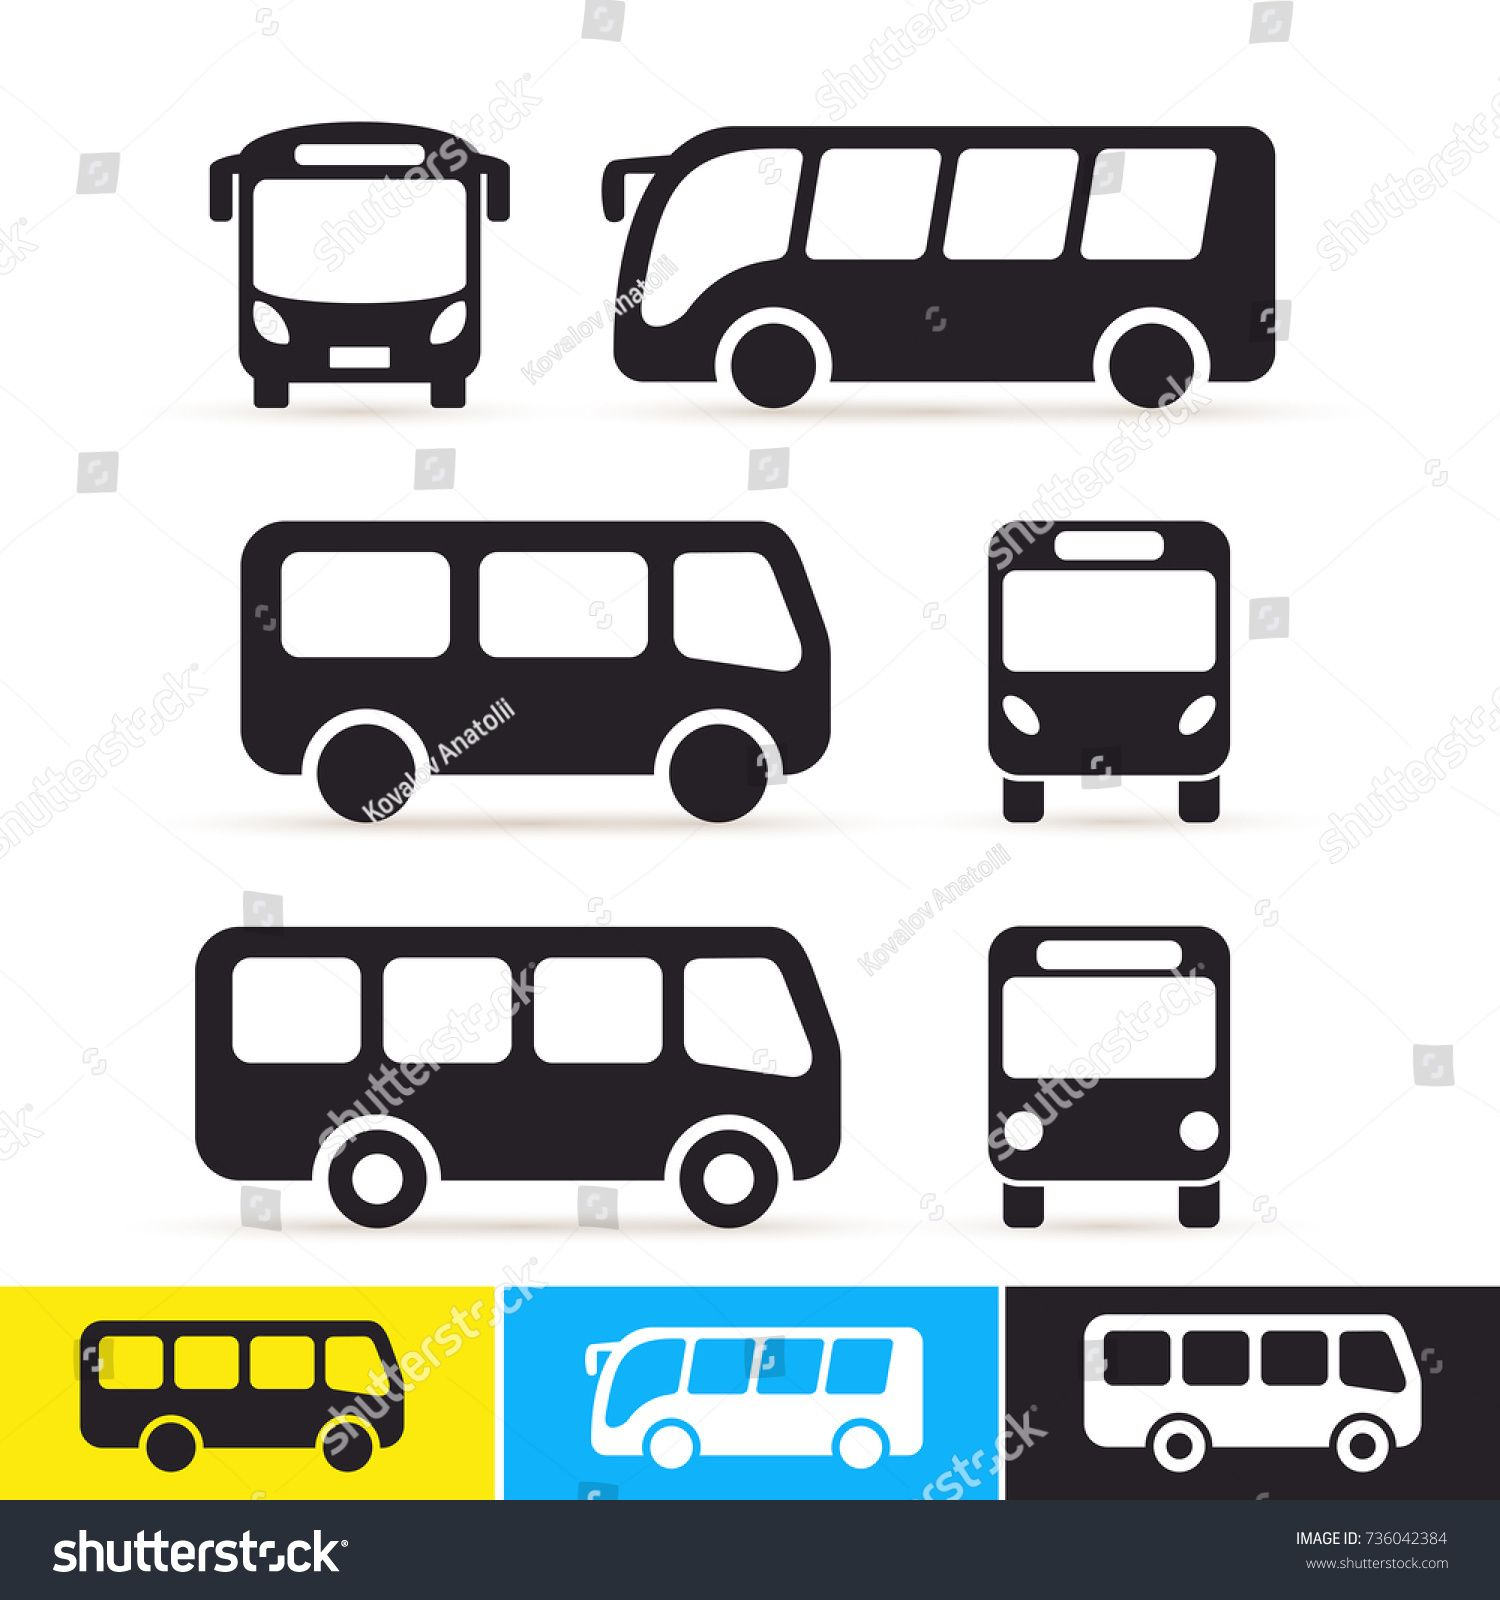 Set Of Bus Icon Vector Illustration Isolated On White Background Sponsored Ad Icon Vector Set Vector Illustration Illustration Brochure Design Template